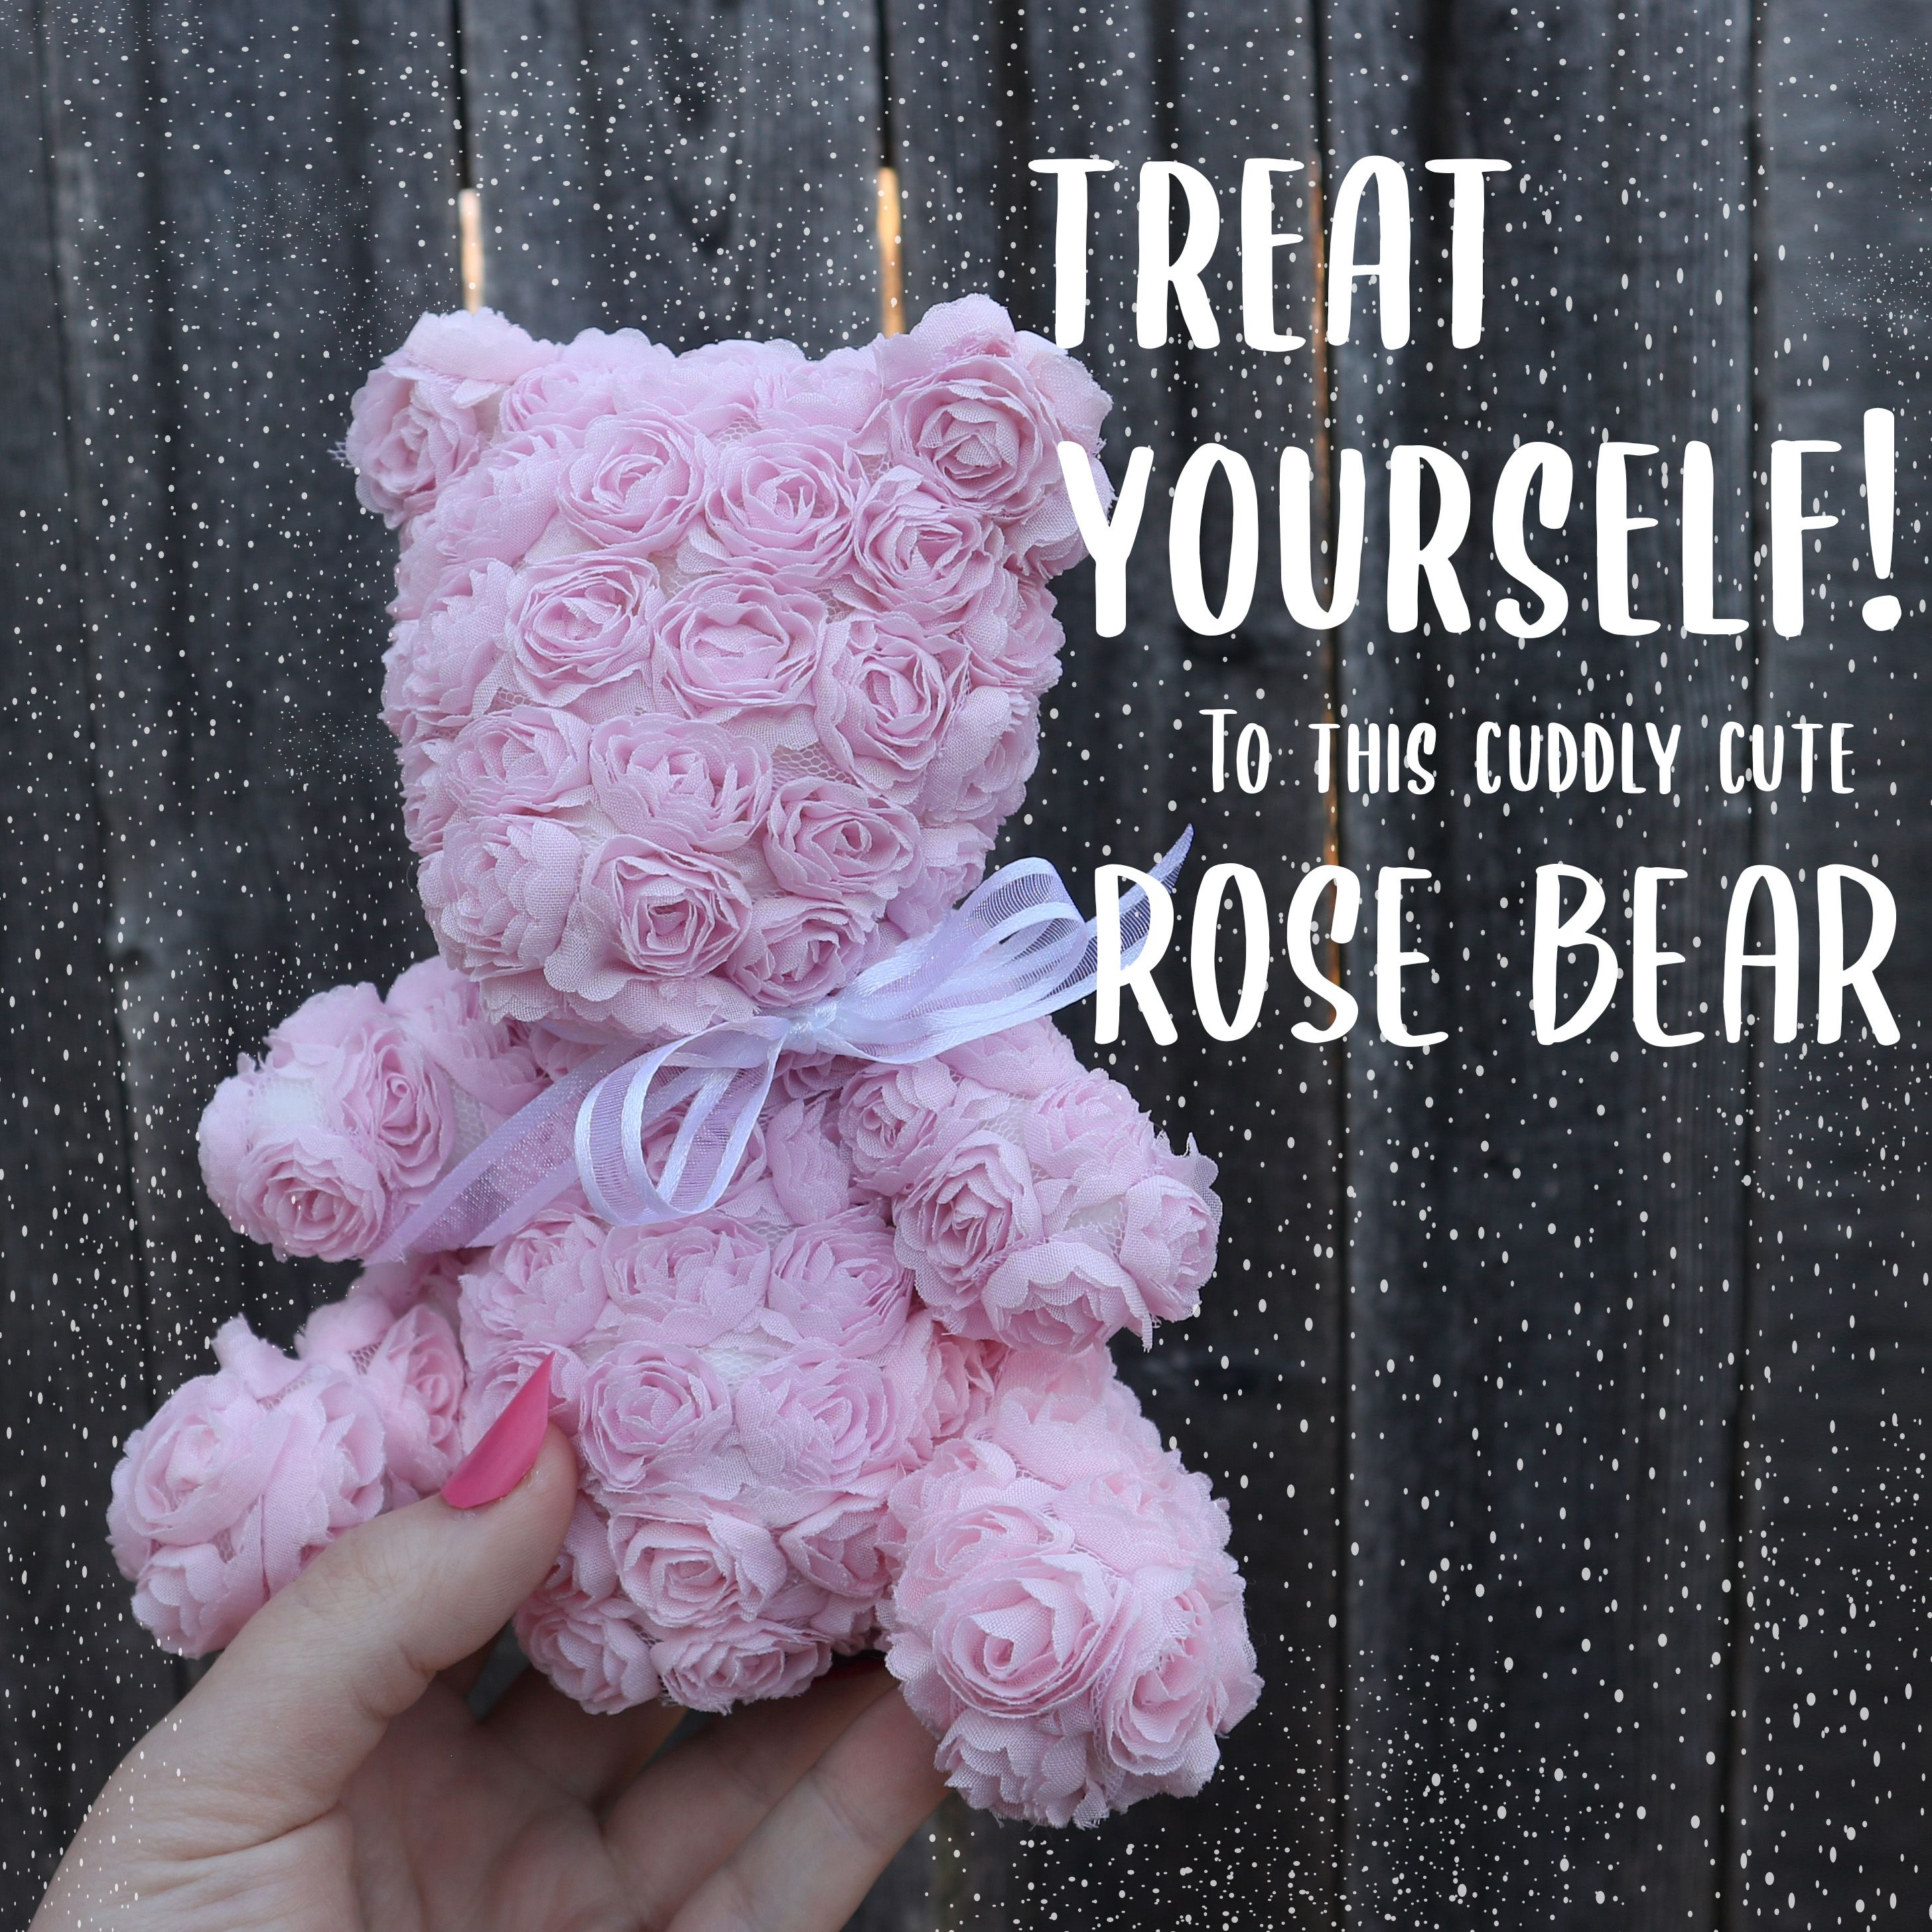 Soft Rose Bear Easter Kid Gifts Easter Basket Easter Etsy In 2020 Easter Gifts For Kids Diy Gifts Just Because Diy Gifts For Girlfriend